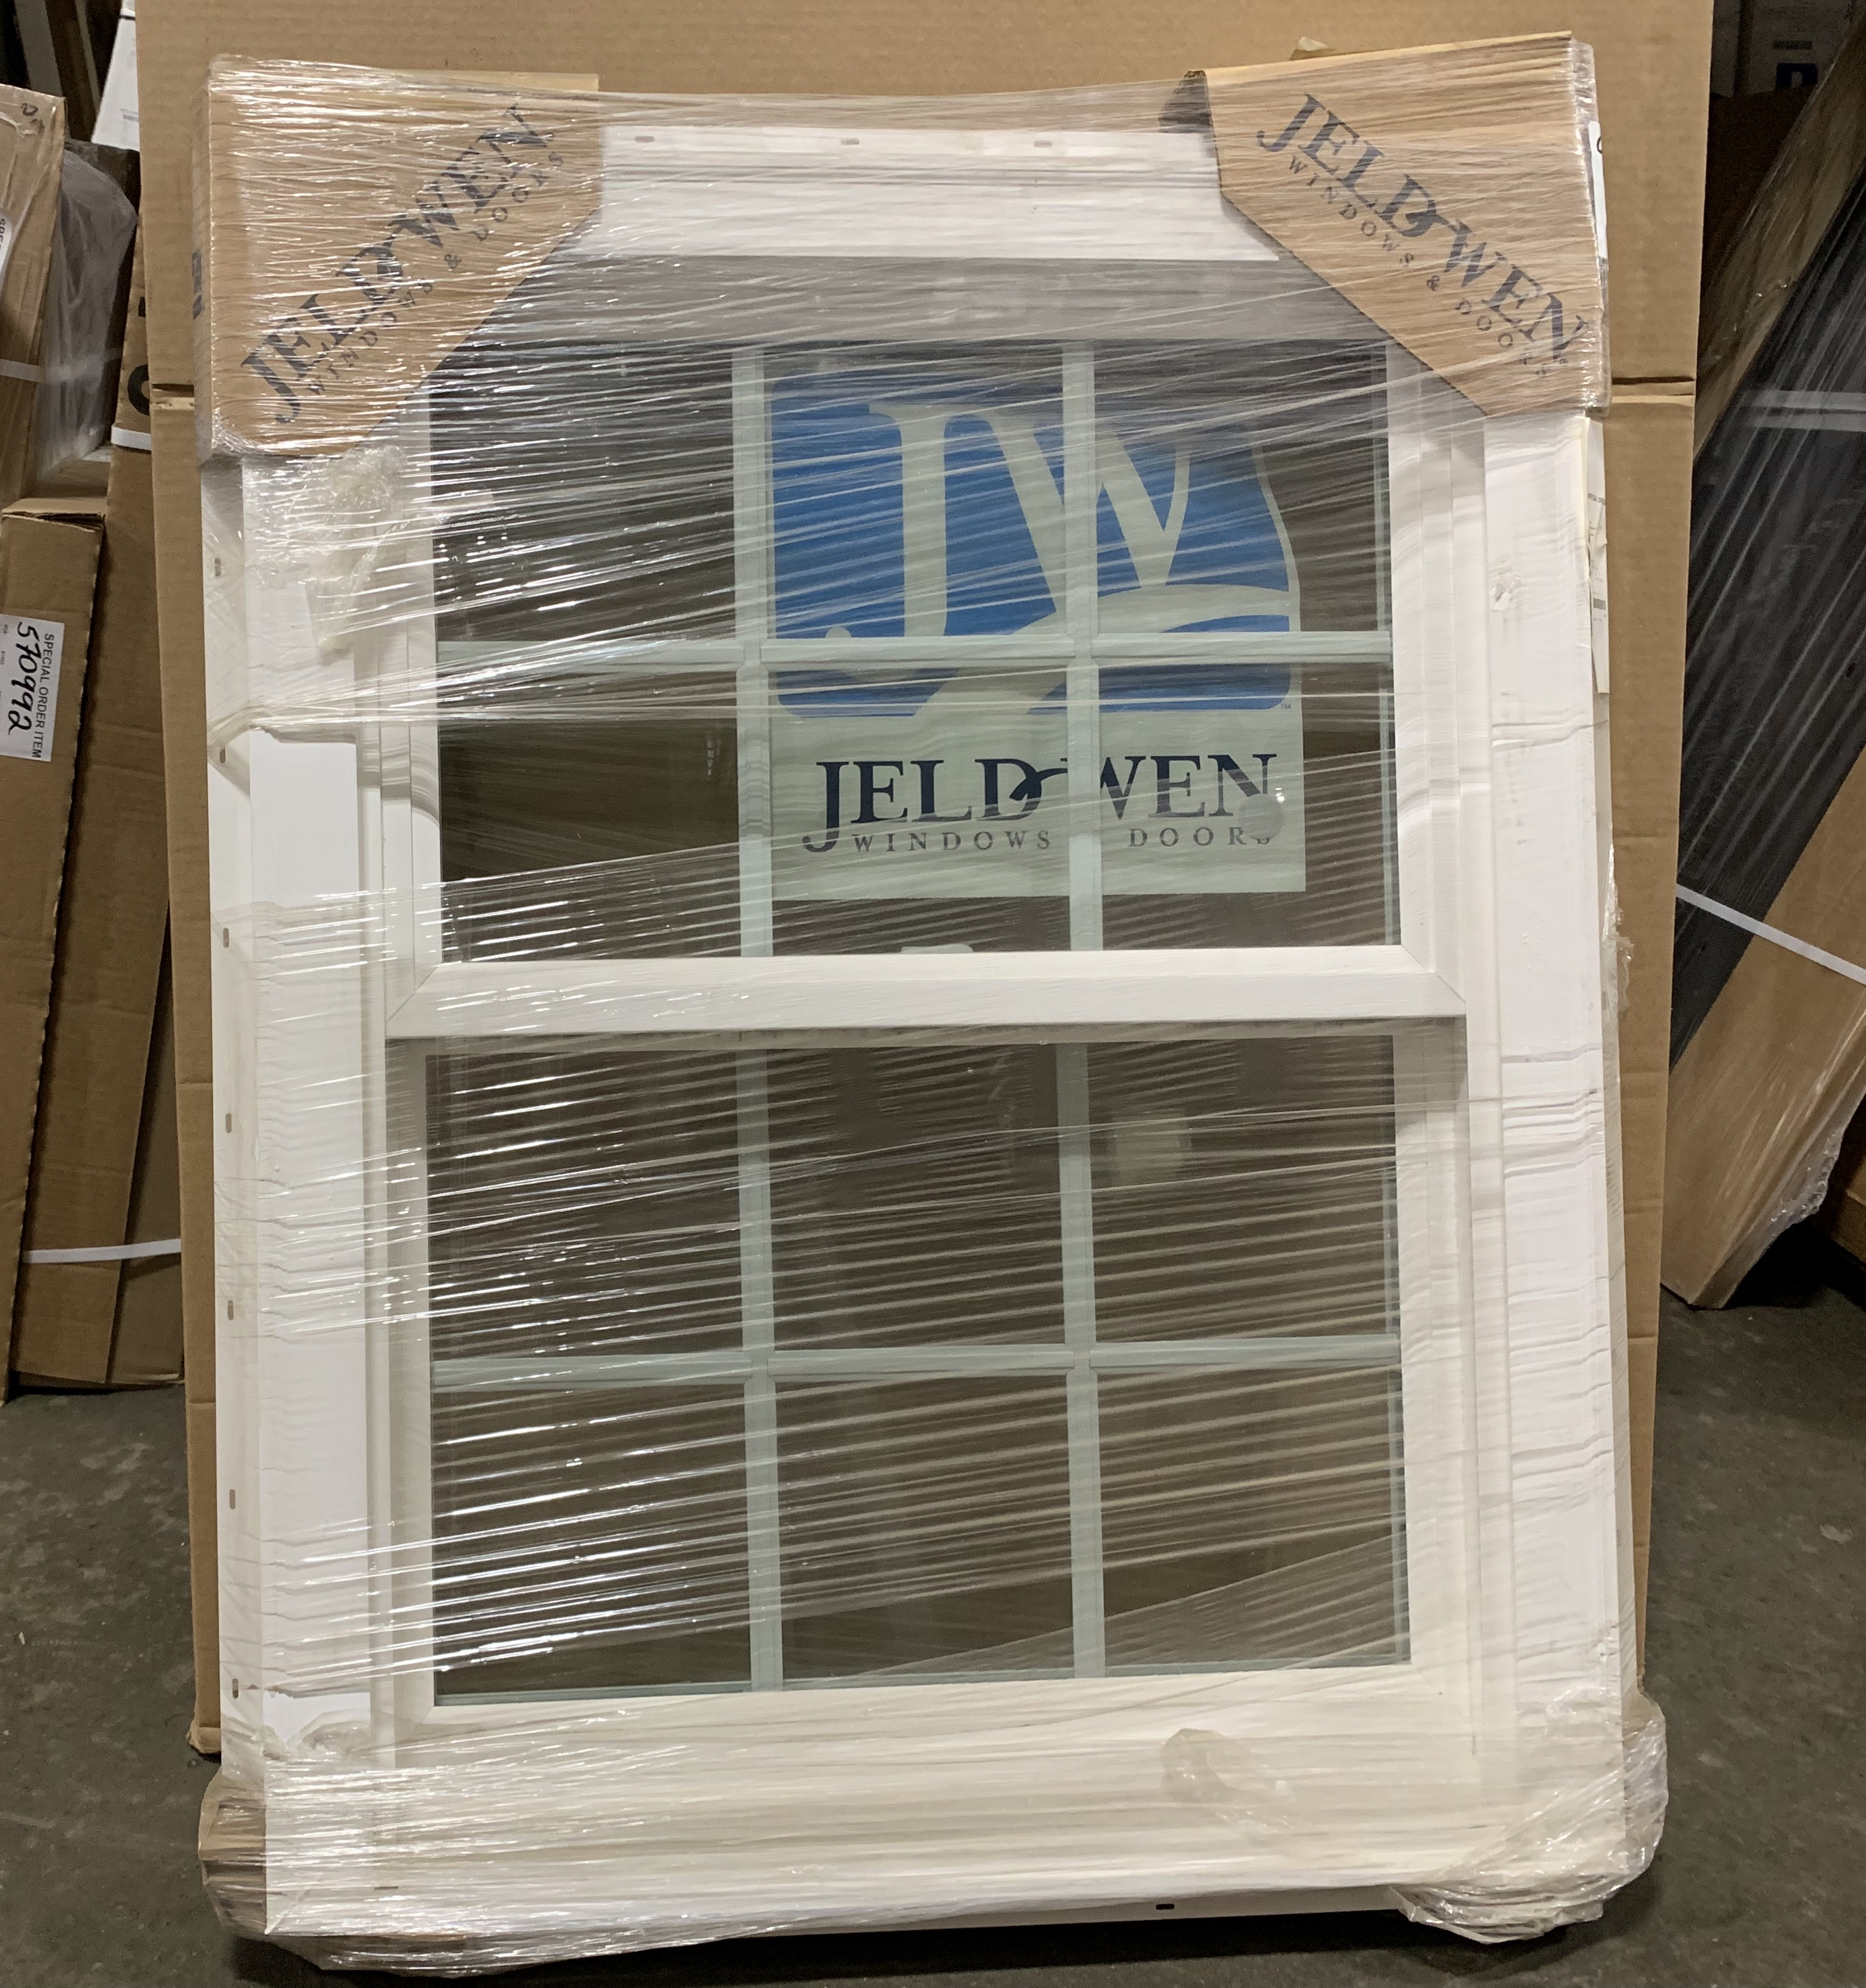 Jeld-Wen Buikders Vinyl Double Hung Window